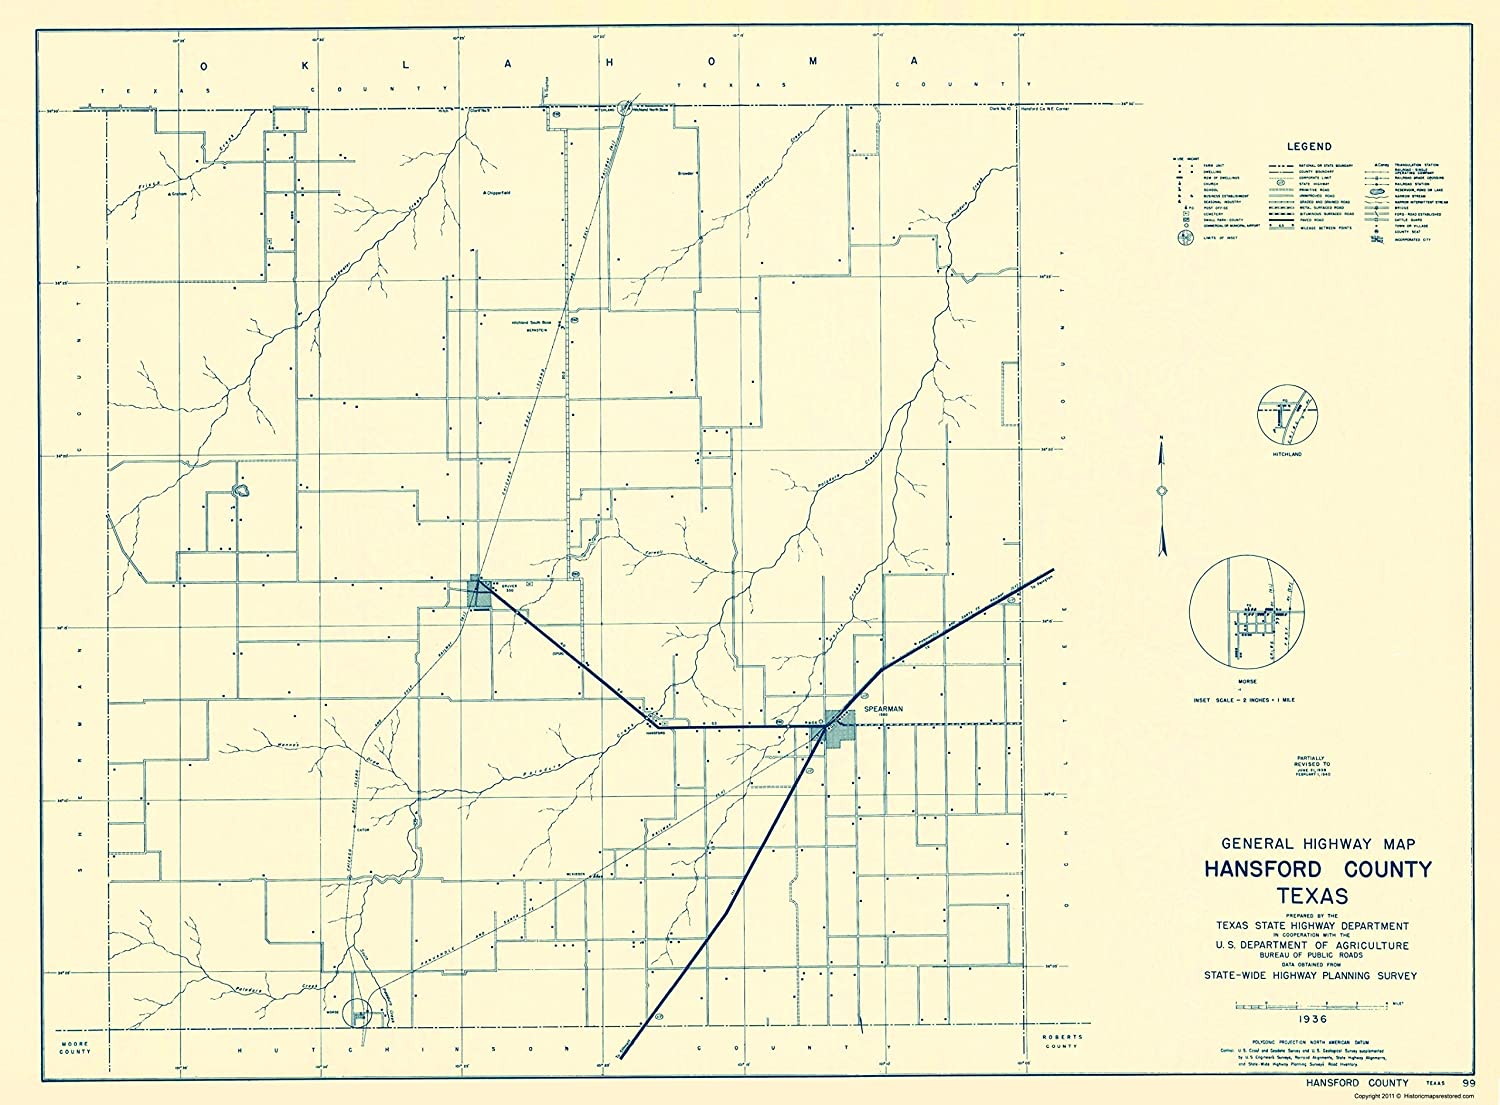 Amazon.com: Old County Map - Hansford Texas - Highway Dept ... on map of highway 90 texas, map of highway 77 texas, map of highway 40 texas, map of highway 59 texas, map of highway 10 texas, map of highway 20 texas,